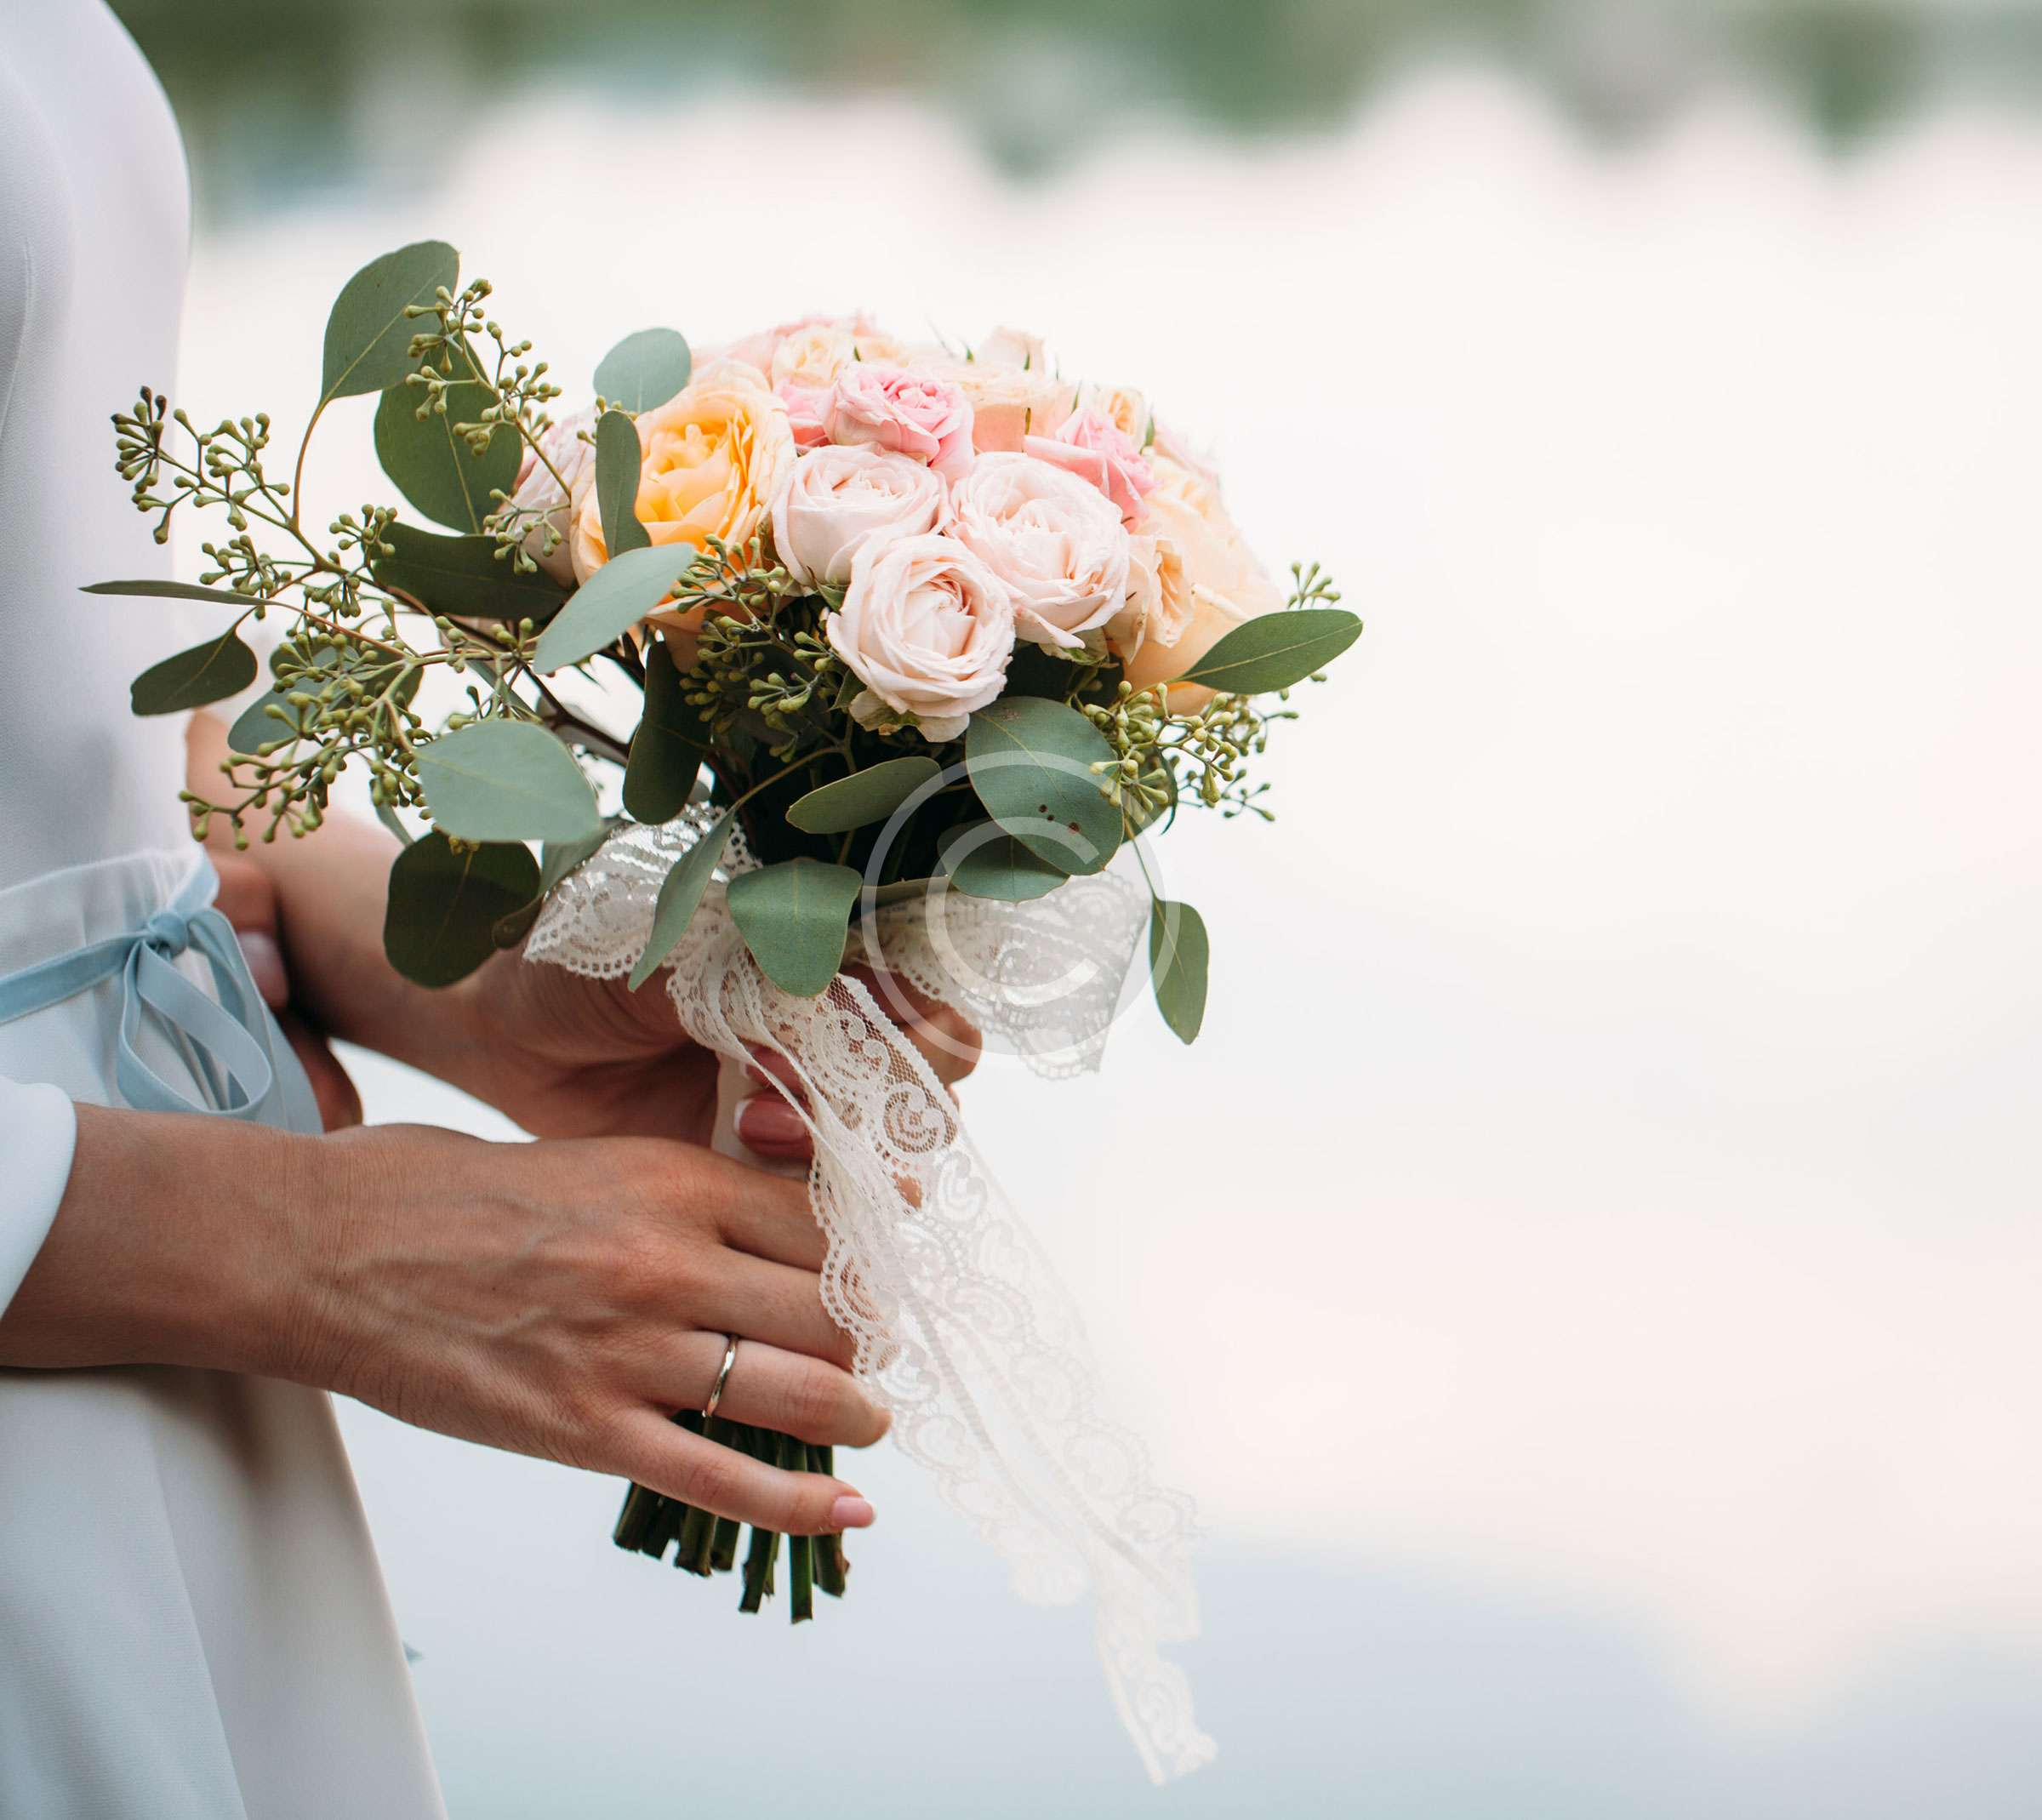 Little Tips for the Big Wedding Day